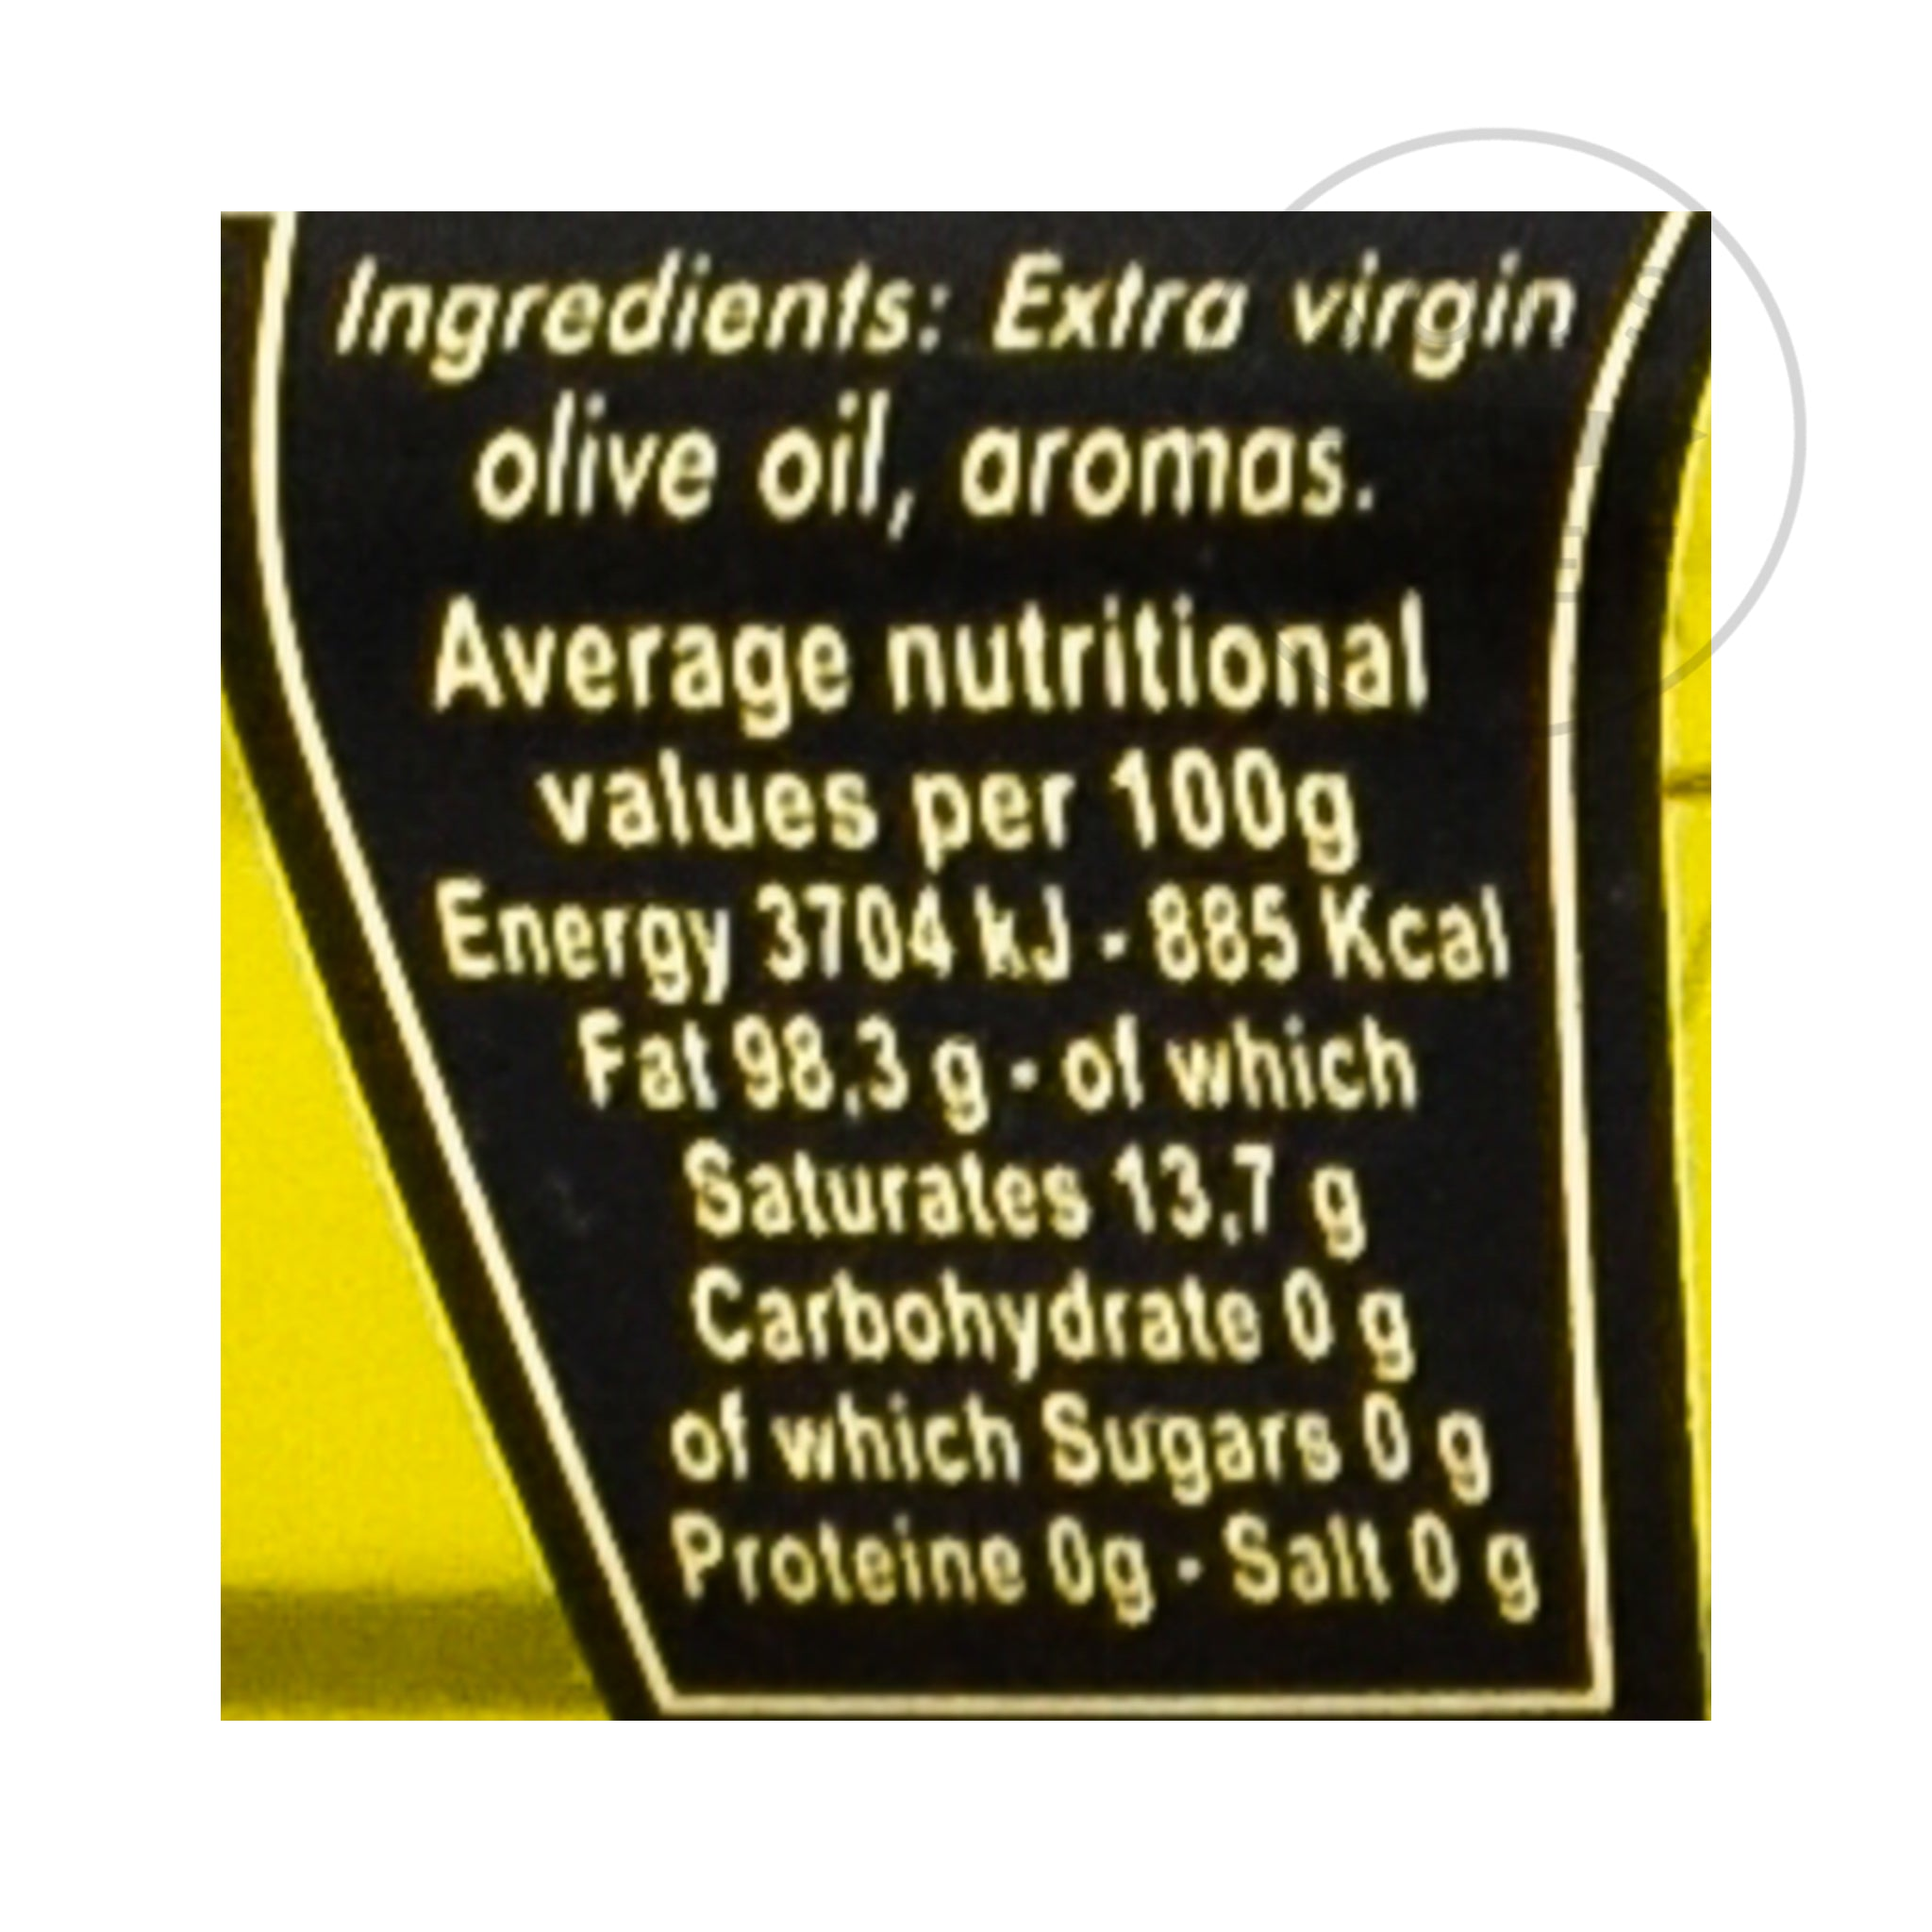 Black Truffle Oil 100ml nutritional information ingredients